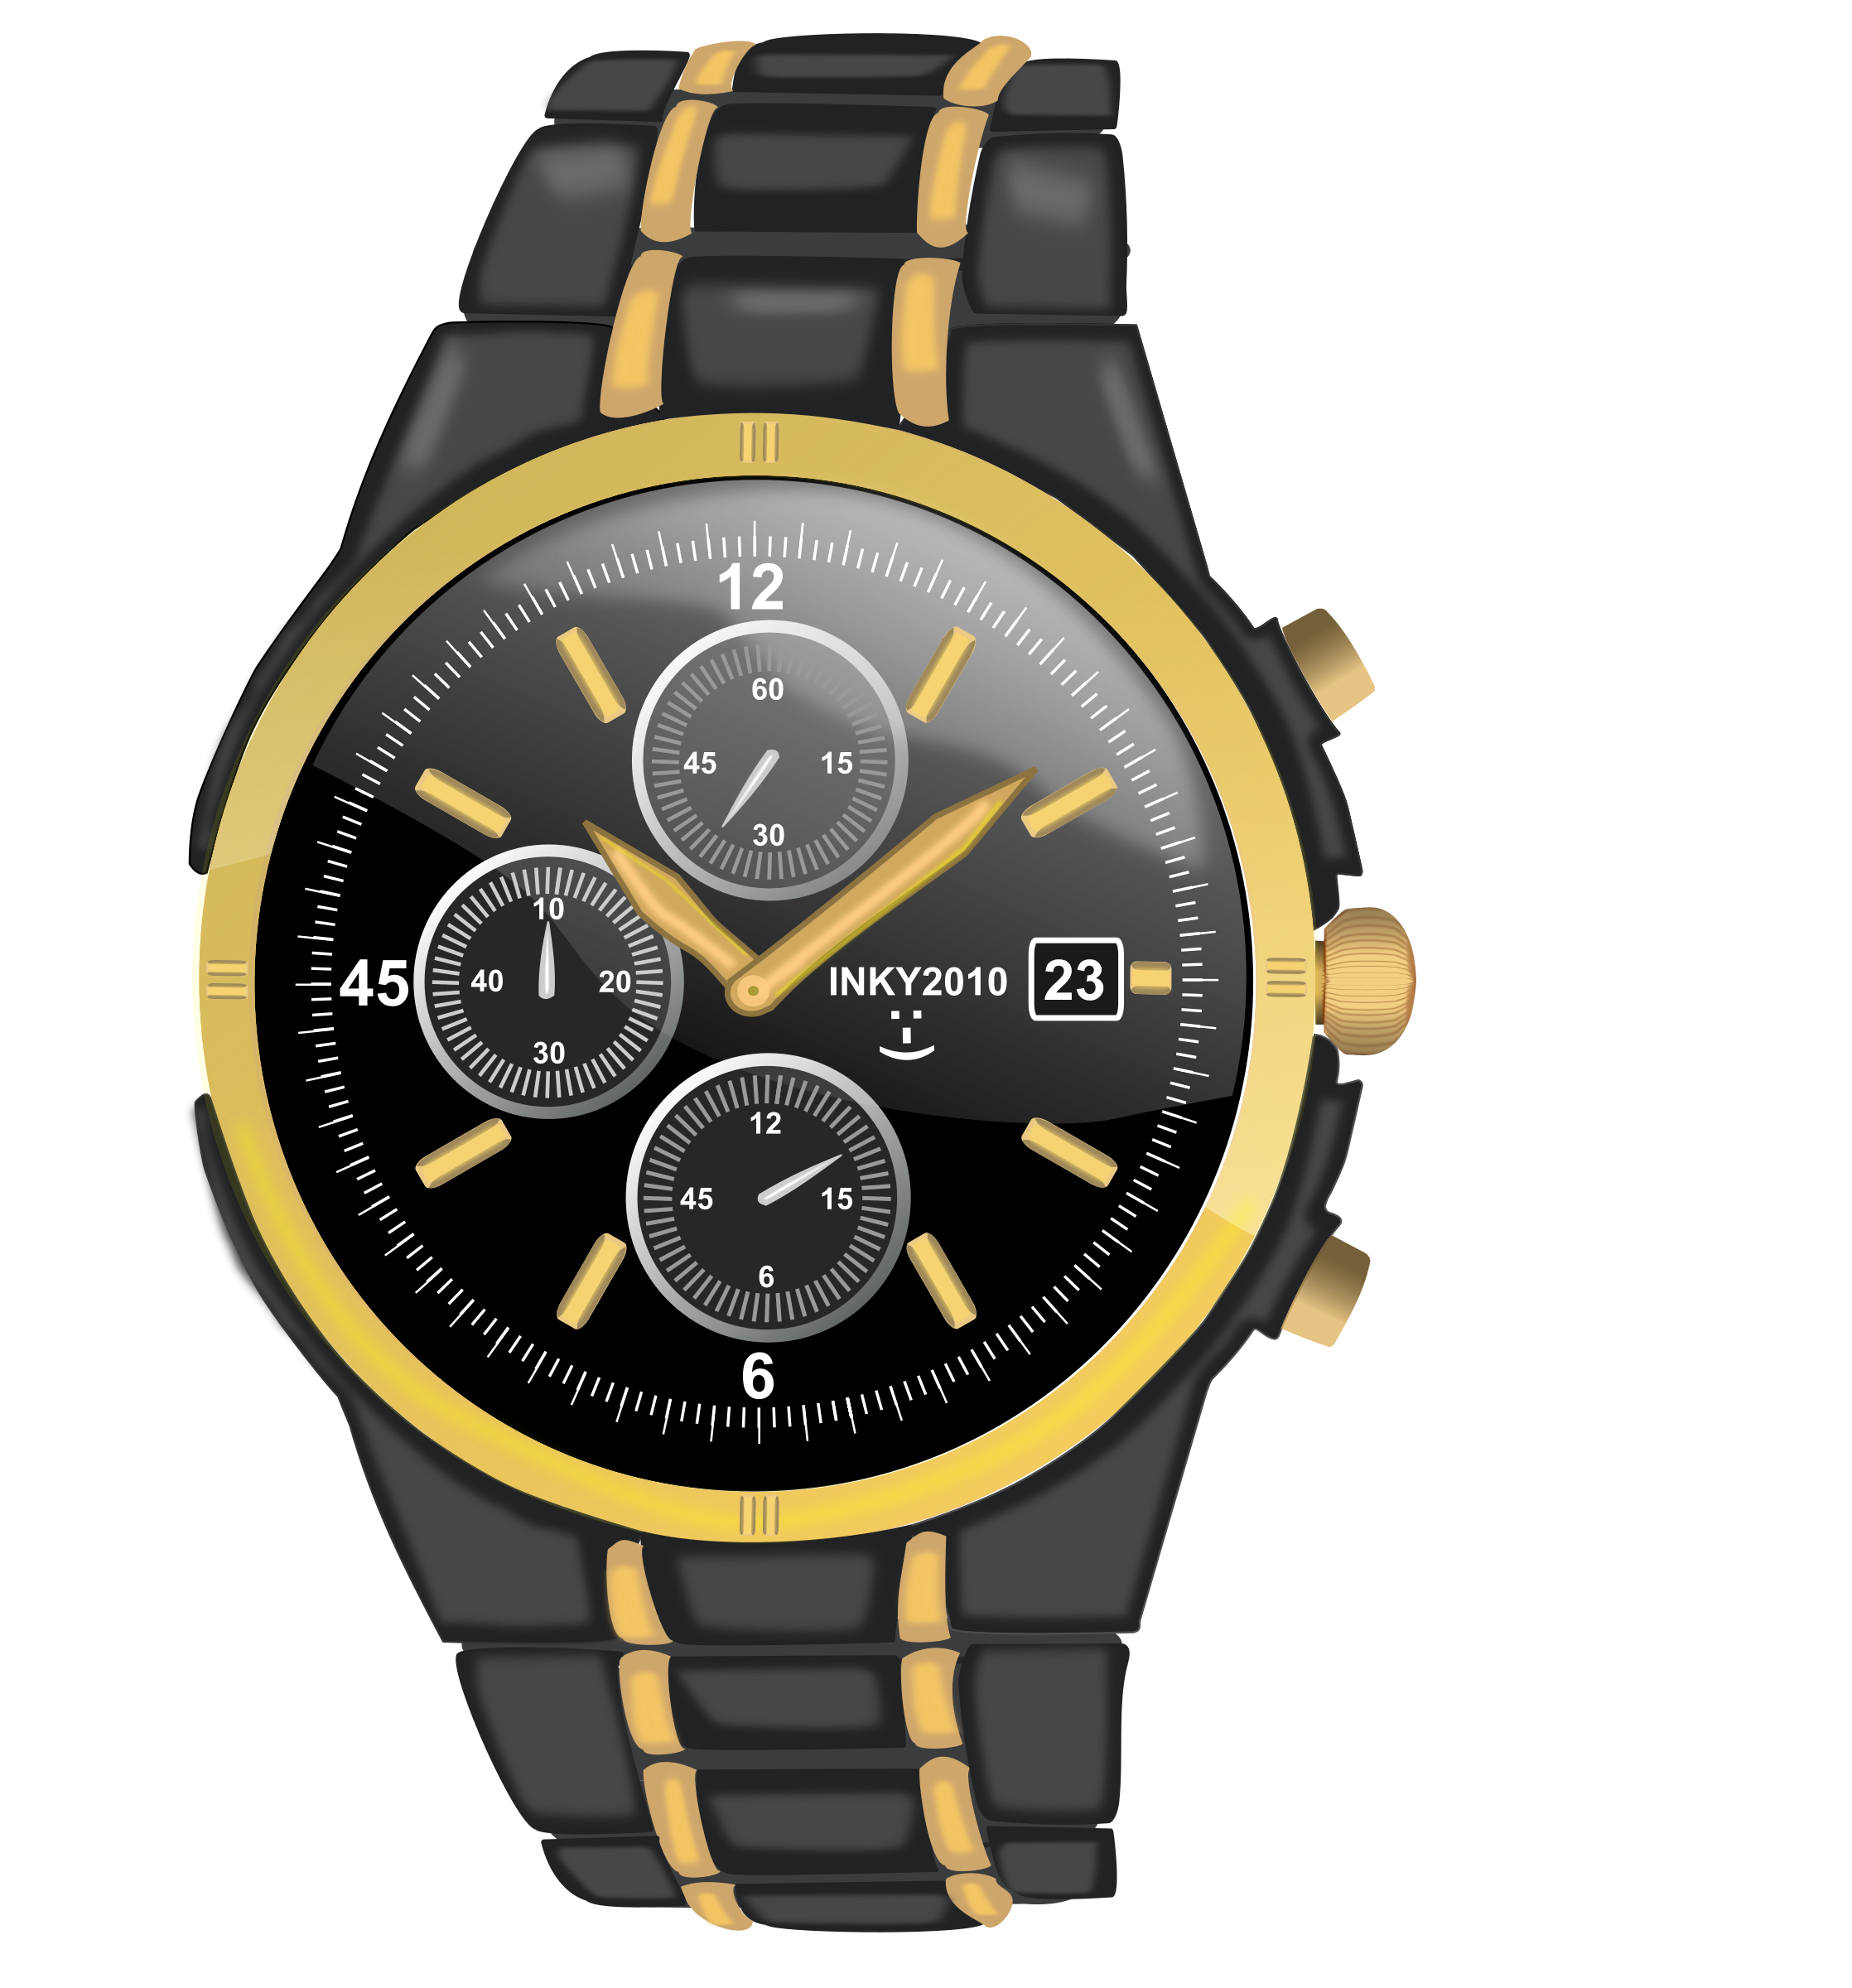 Arm big image png. See clipart mens watch